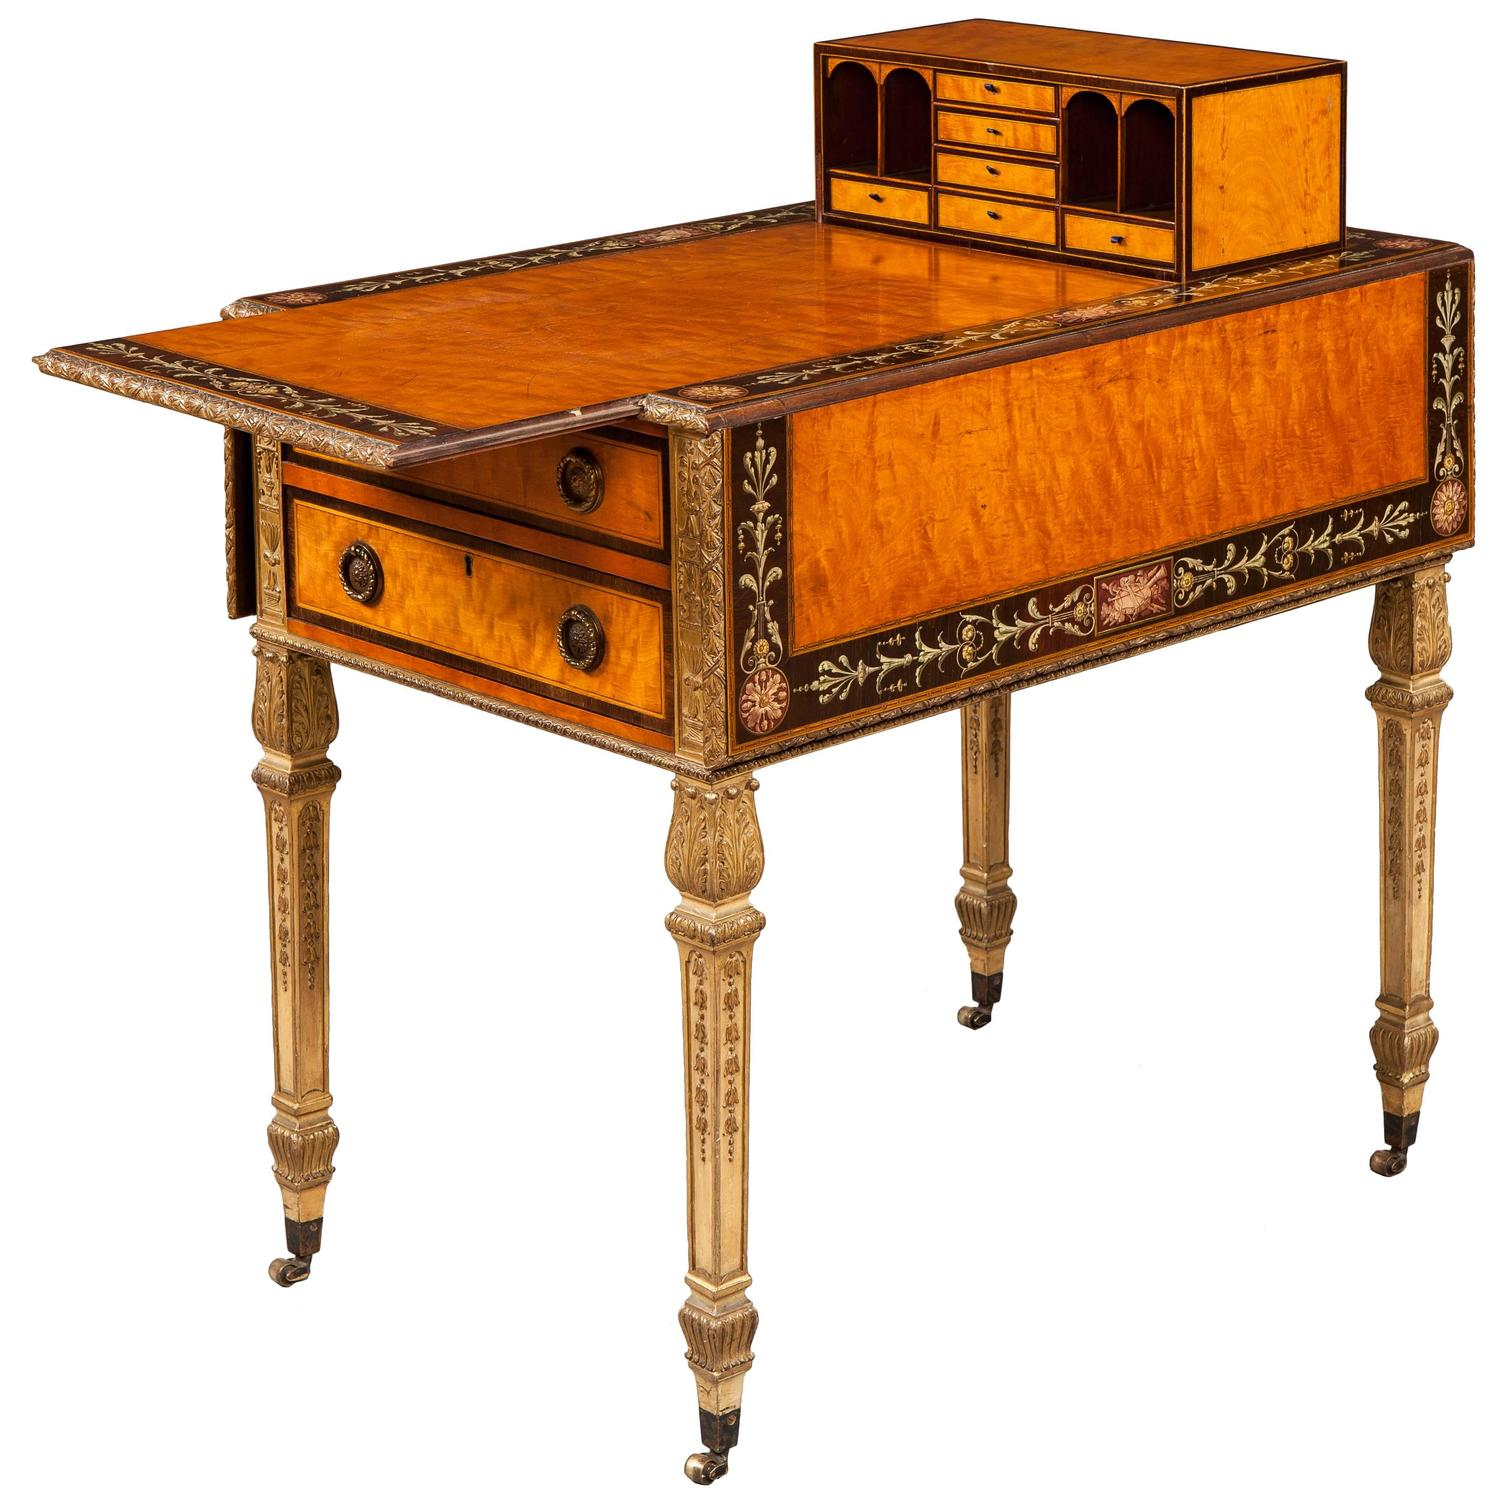 English Satinwood And Painted Neoclassical Style Drop Leaf Pembroke Table  At 1stdibs